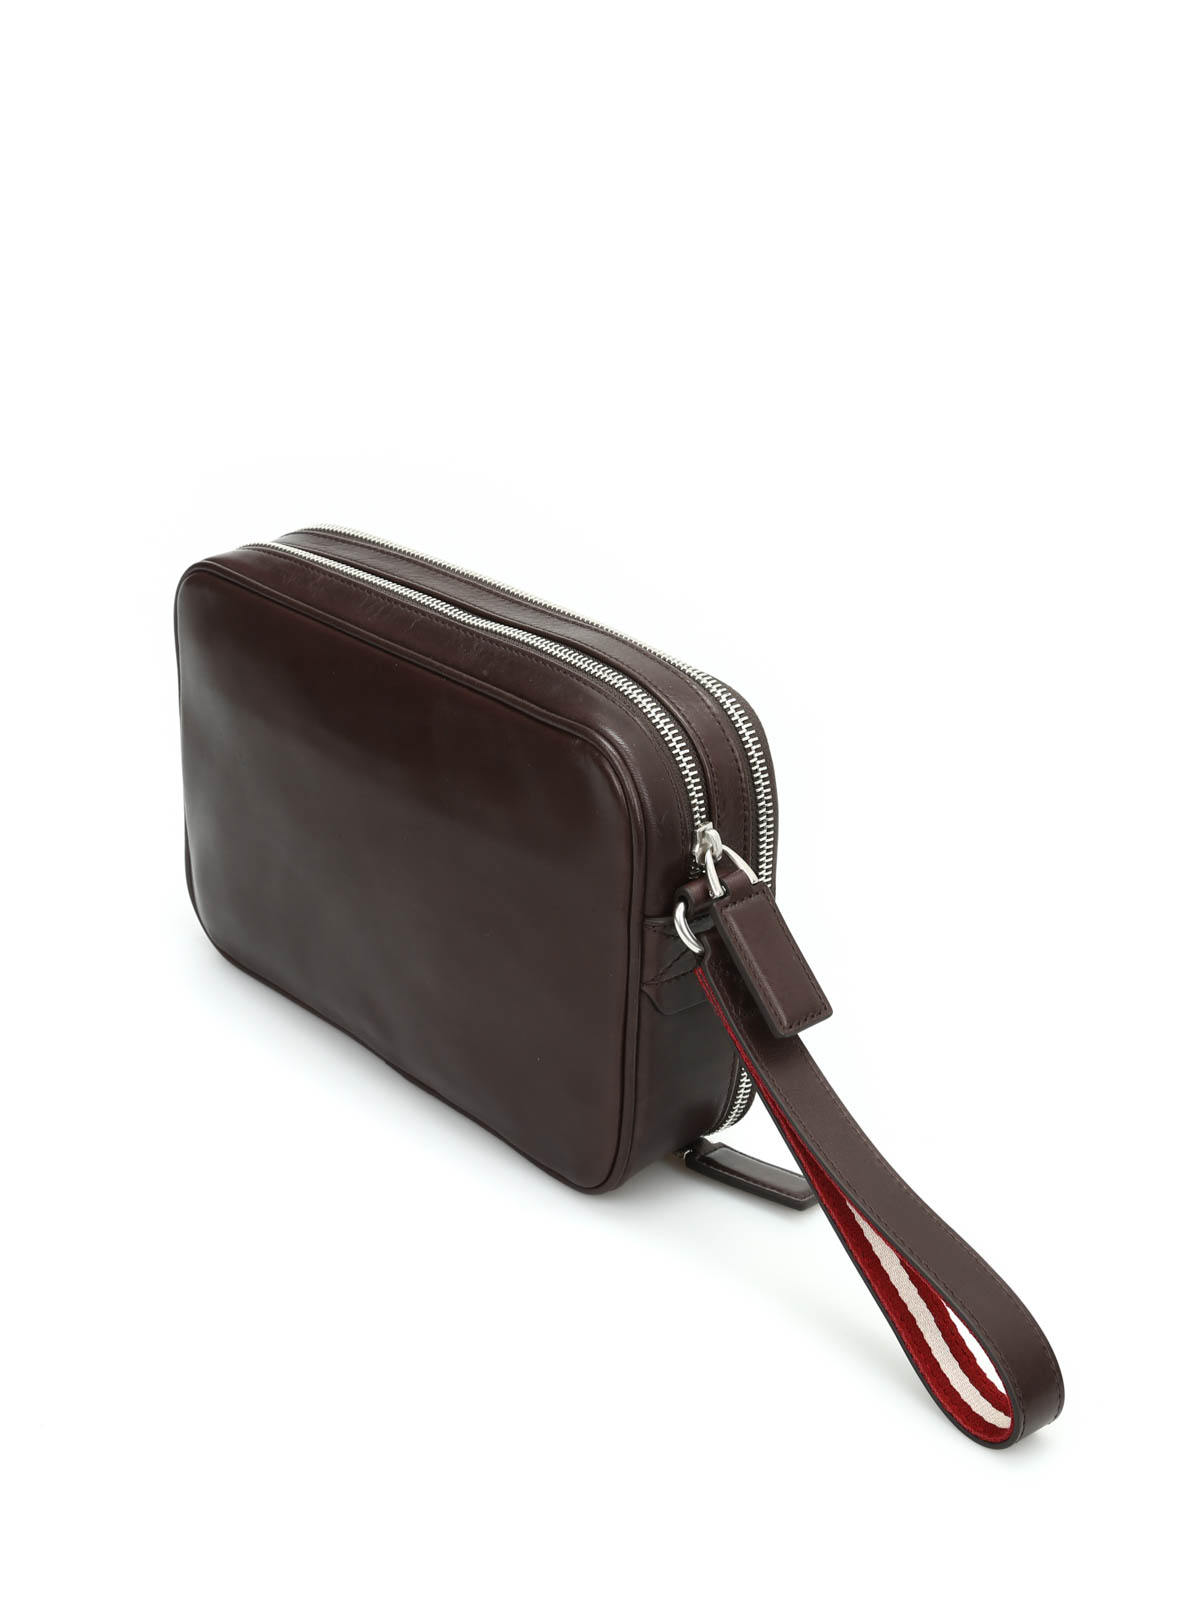 Bally usa shop online